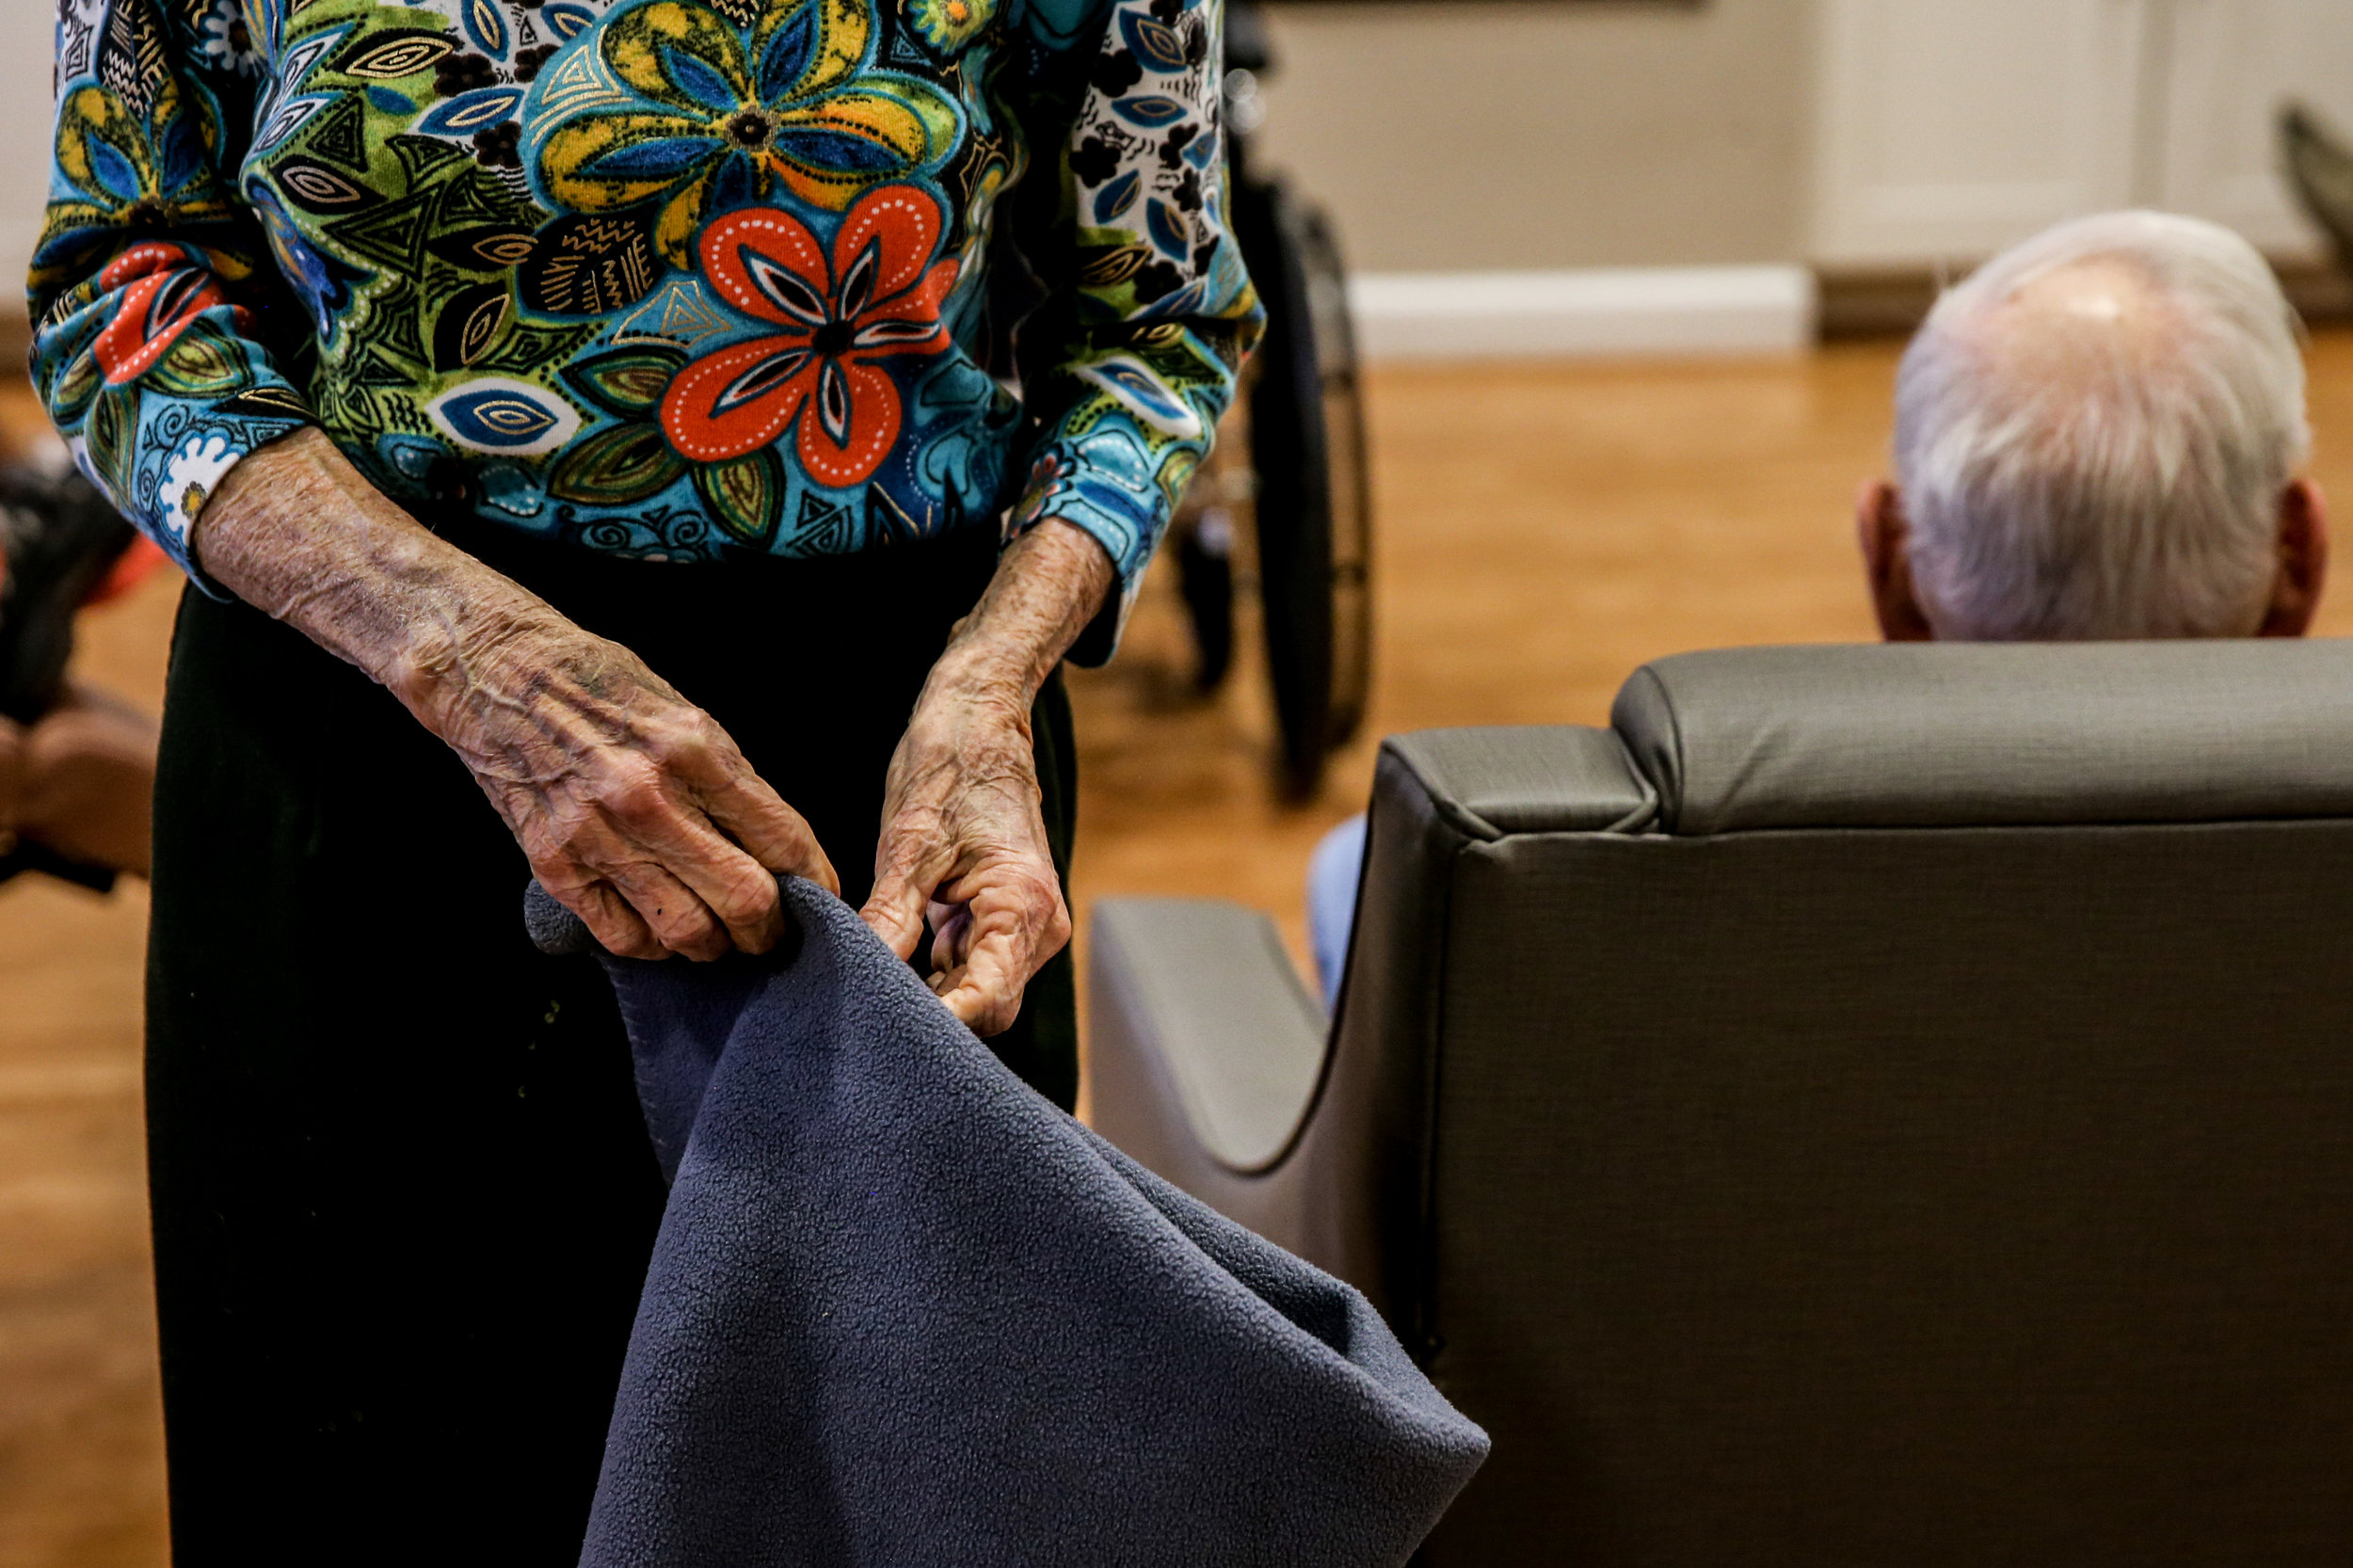 A patient tries to fold a blanket in the common area at the RoseWood Village assisted living home on Greenbrier Drive after lunch time. Many patients with dementia and alzheimer's retain small pieces of things they did earlier in life.